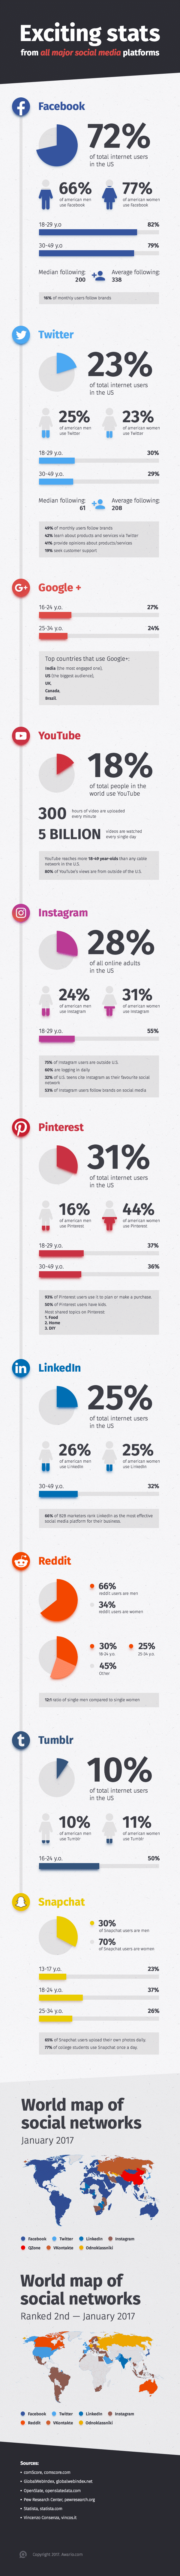 Exciting Stats From All Major Social Media Platforms - #infographic